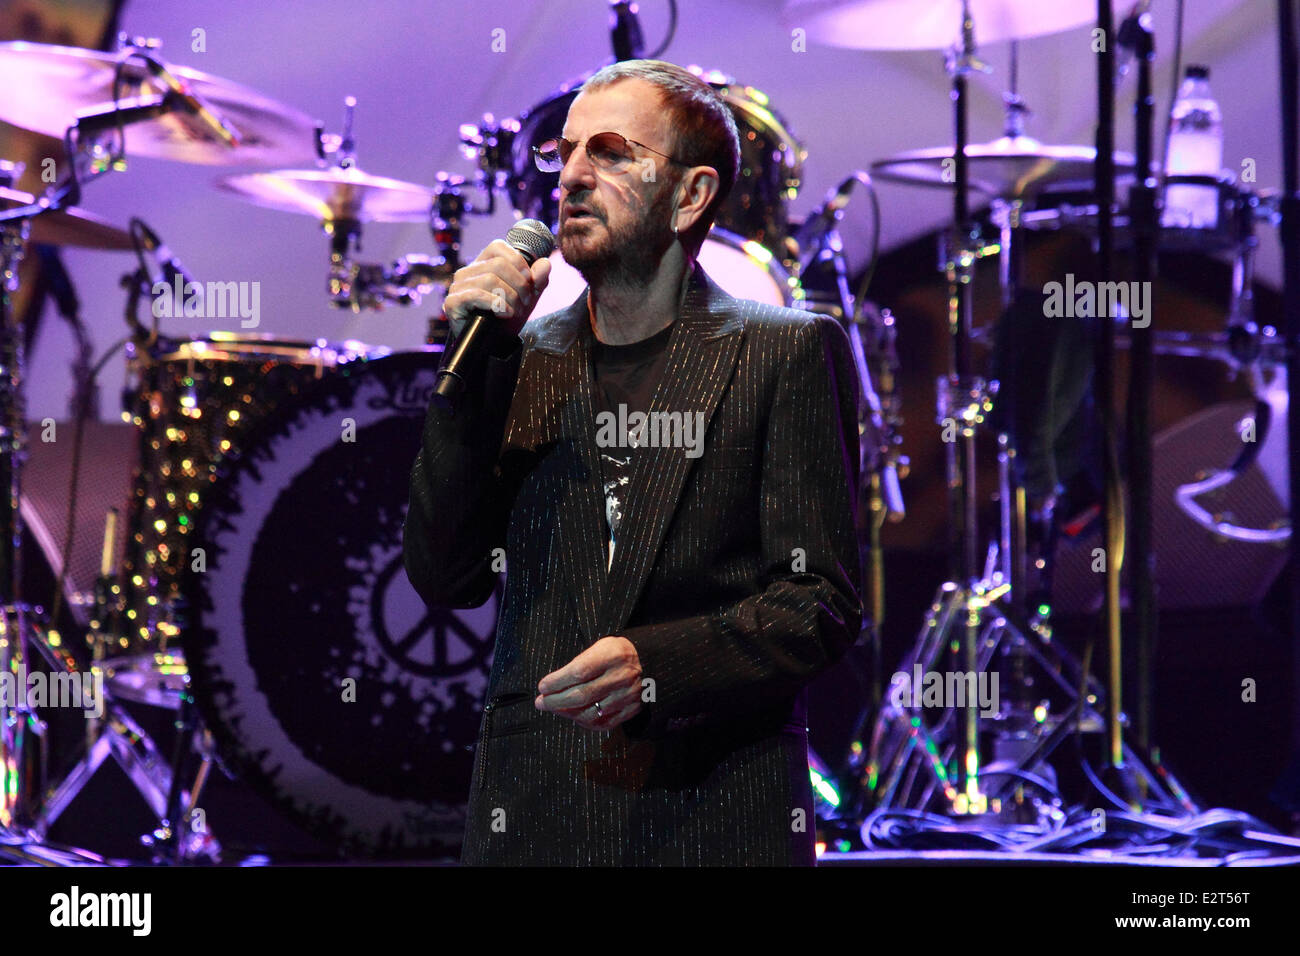 Ringo Starr All-Starr Band performing live in concert at the Adelaide Entertainment Centre  Featuring: Ringo Starr - Stock Image